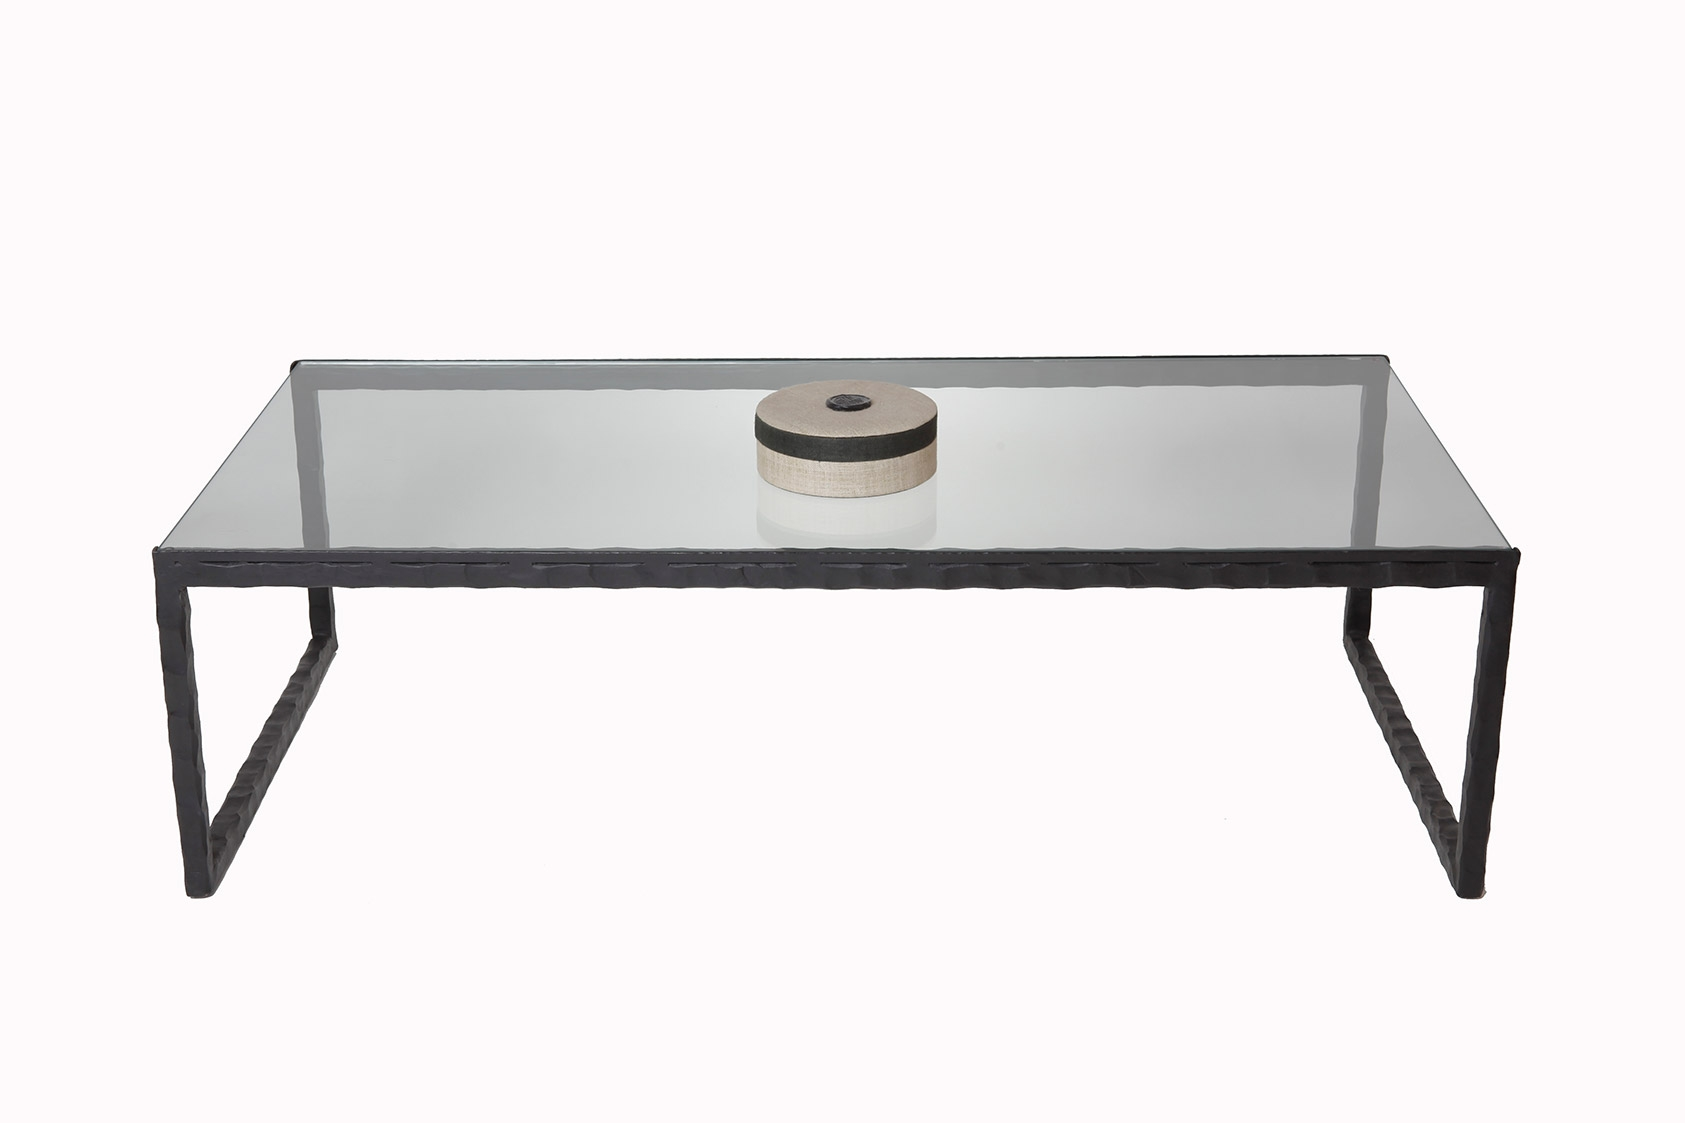 Table basse en verre et fer mobilier design d coration - Table basse de salon en verre et fer forge ...